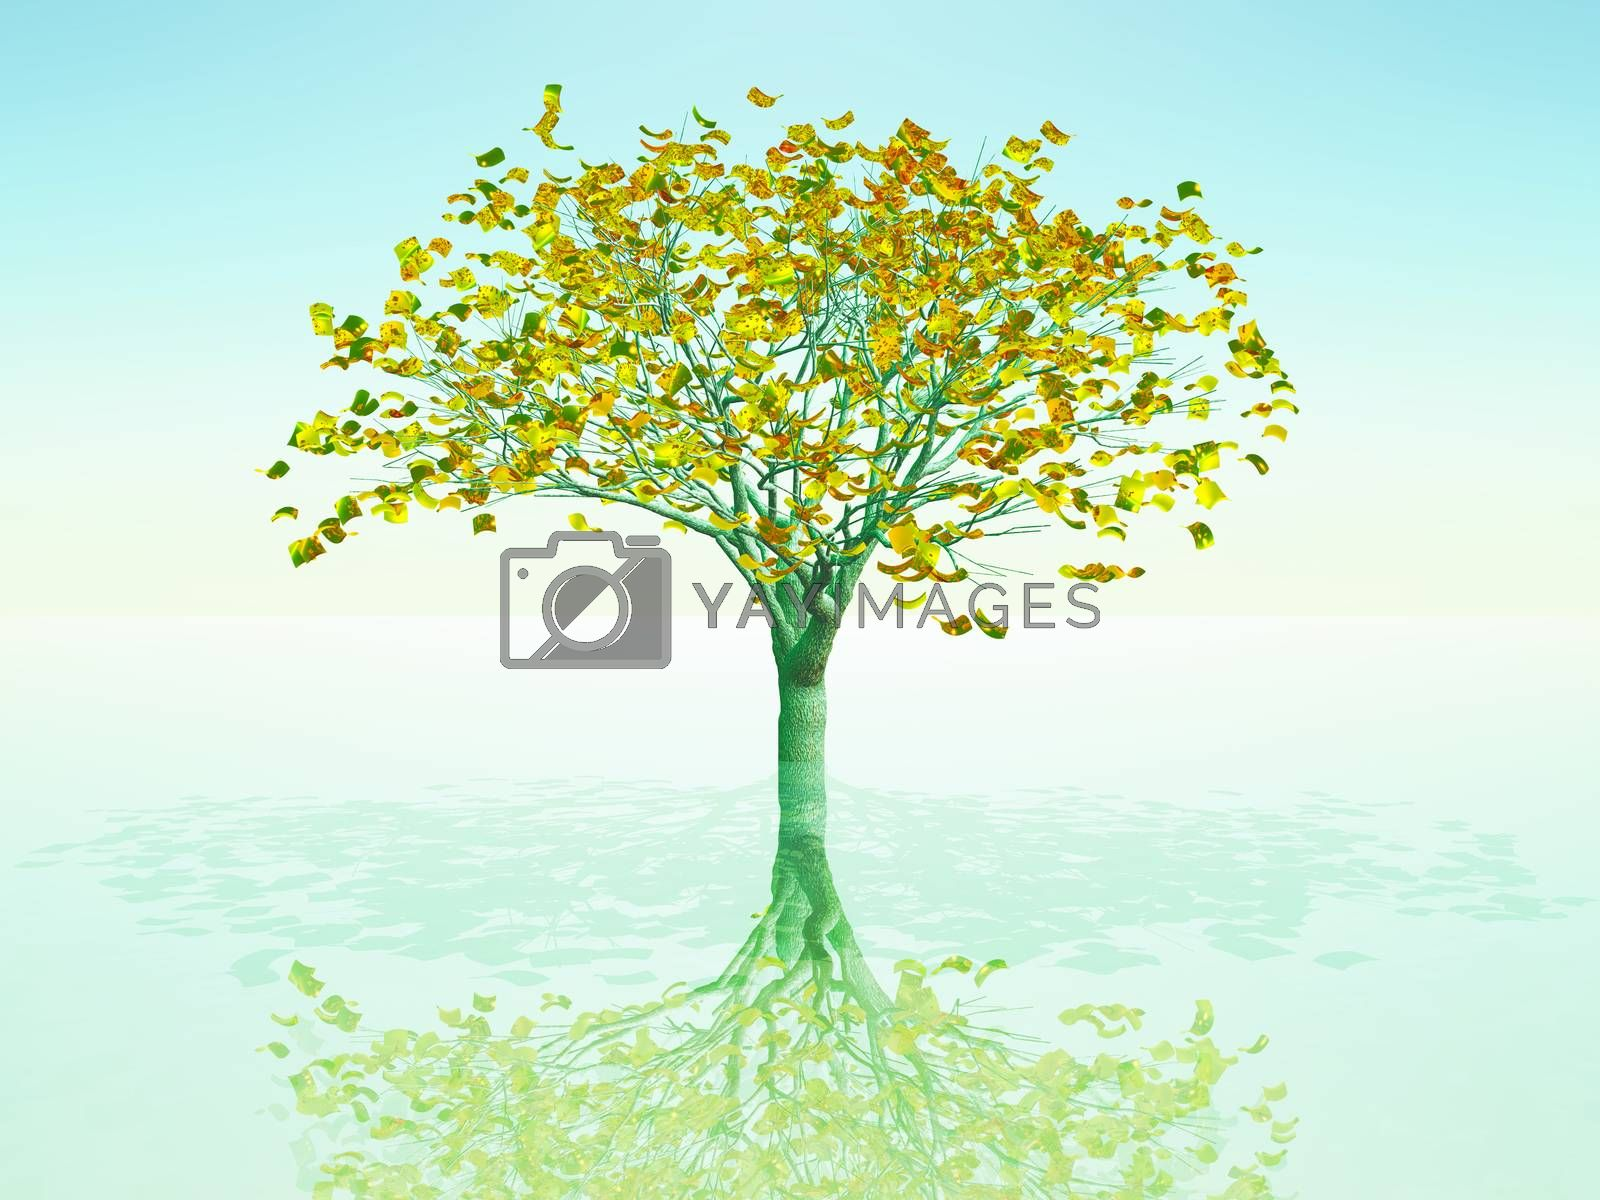 a tree with golden leaves symbol of growing